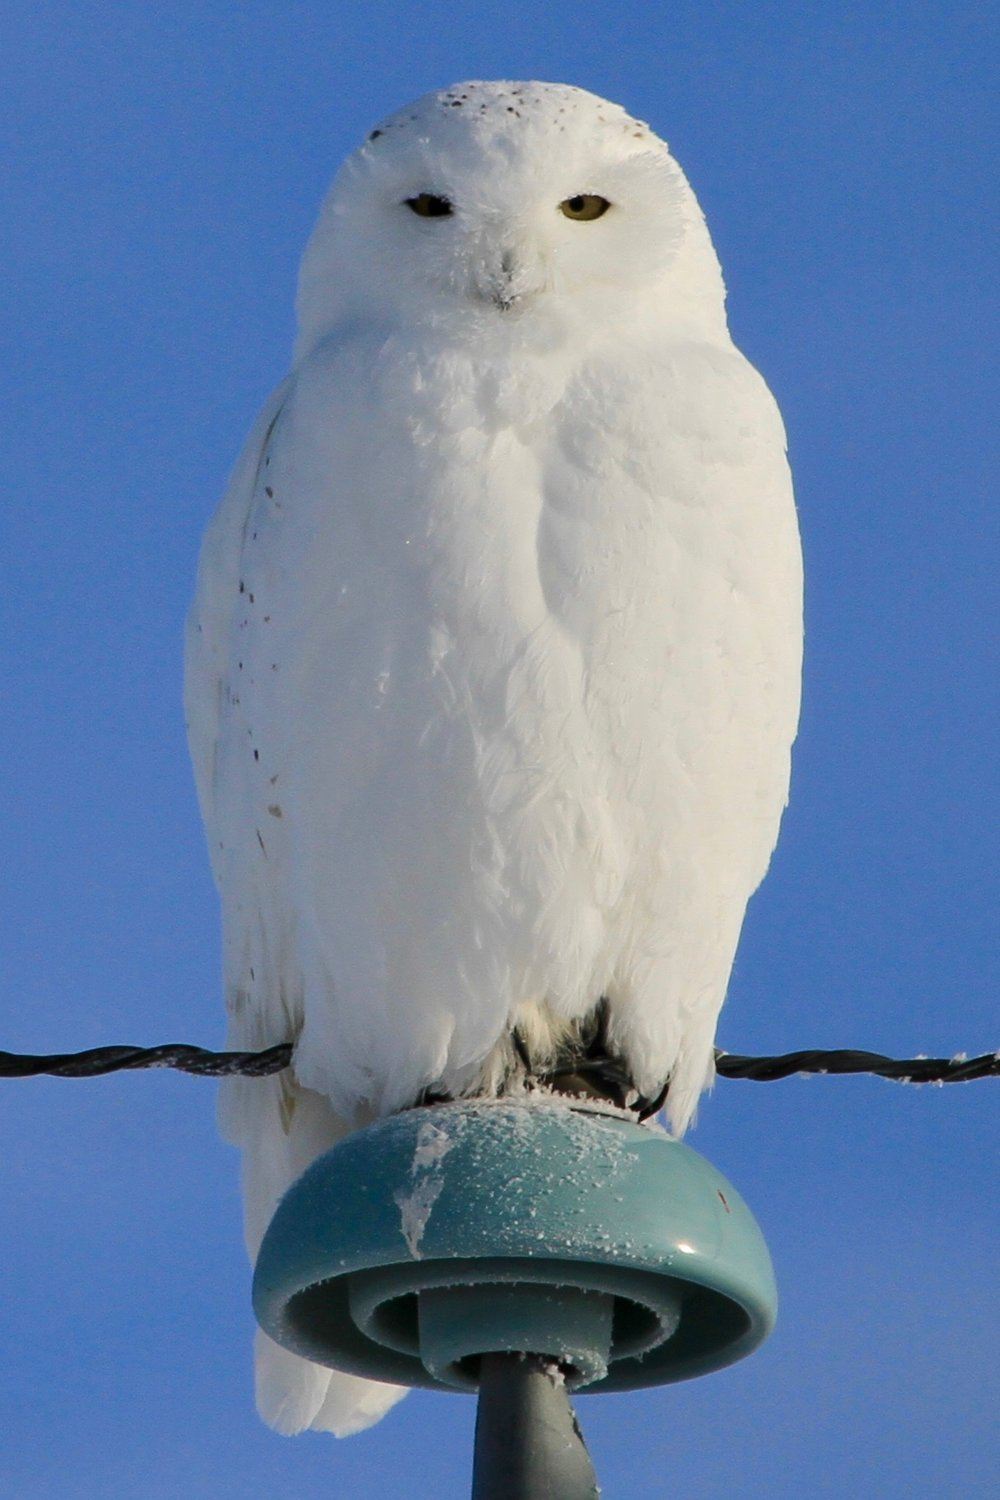 Hedwig aka Snowy Owl ( Bubo scandiacu  s ) in Camrose, Alberta/Treaty 6 territory. Photo by Anelyse.